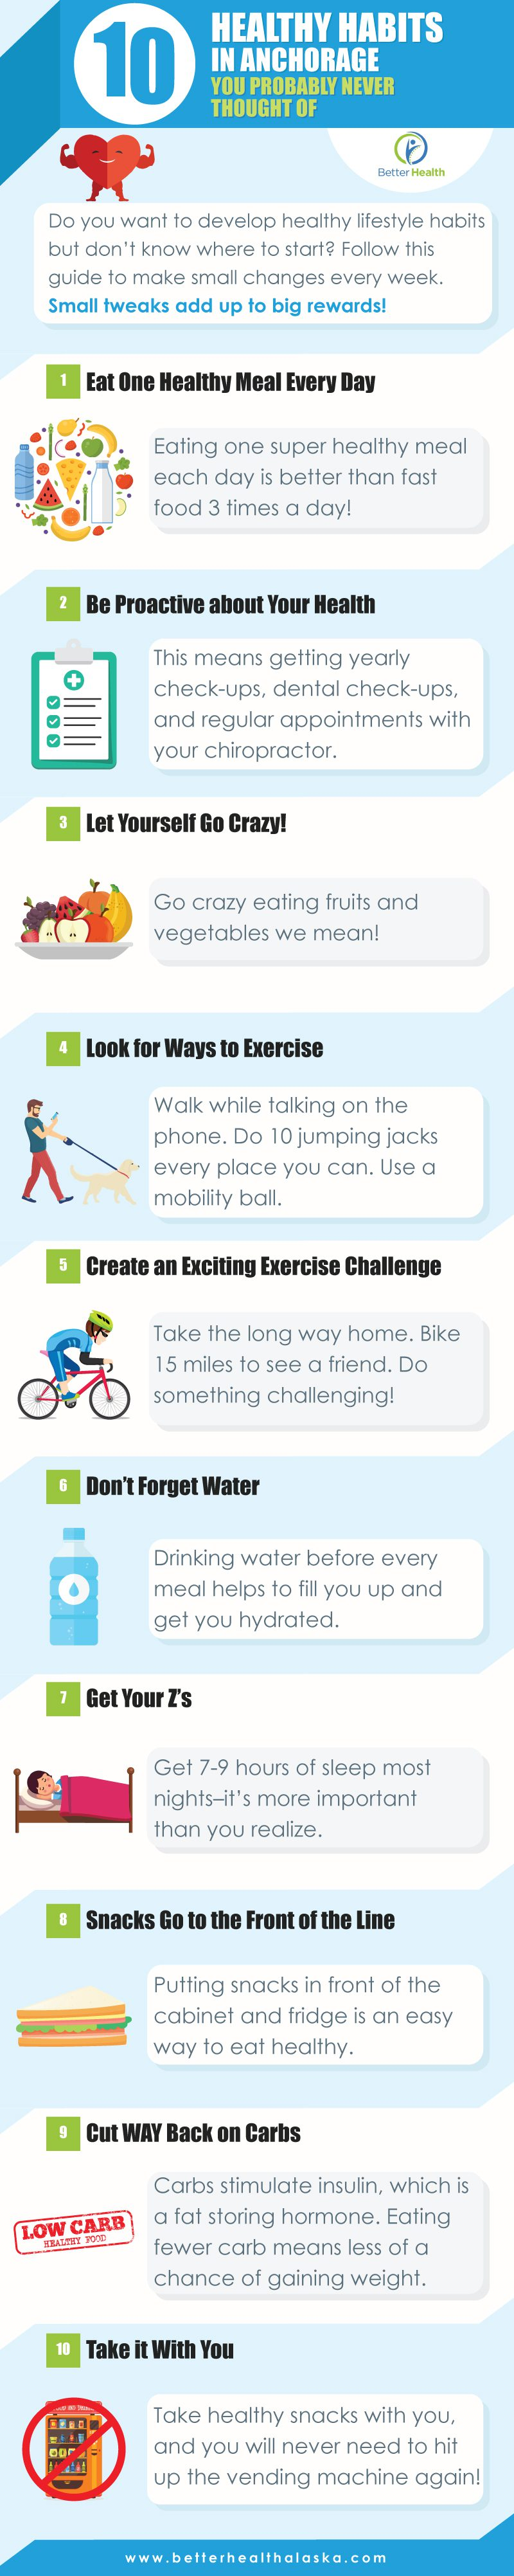 10 Healthy Habit Ideas in Anchorage You've Probably Never Thought Of Infographic